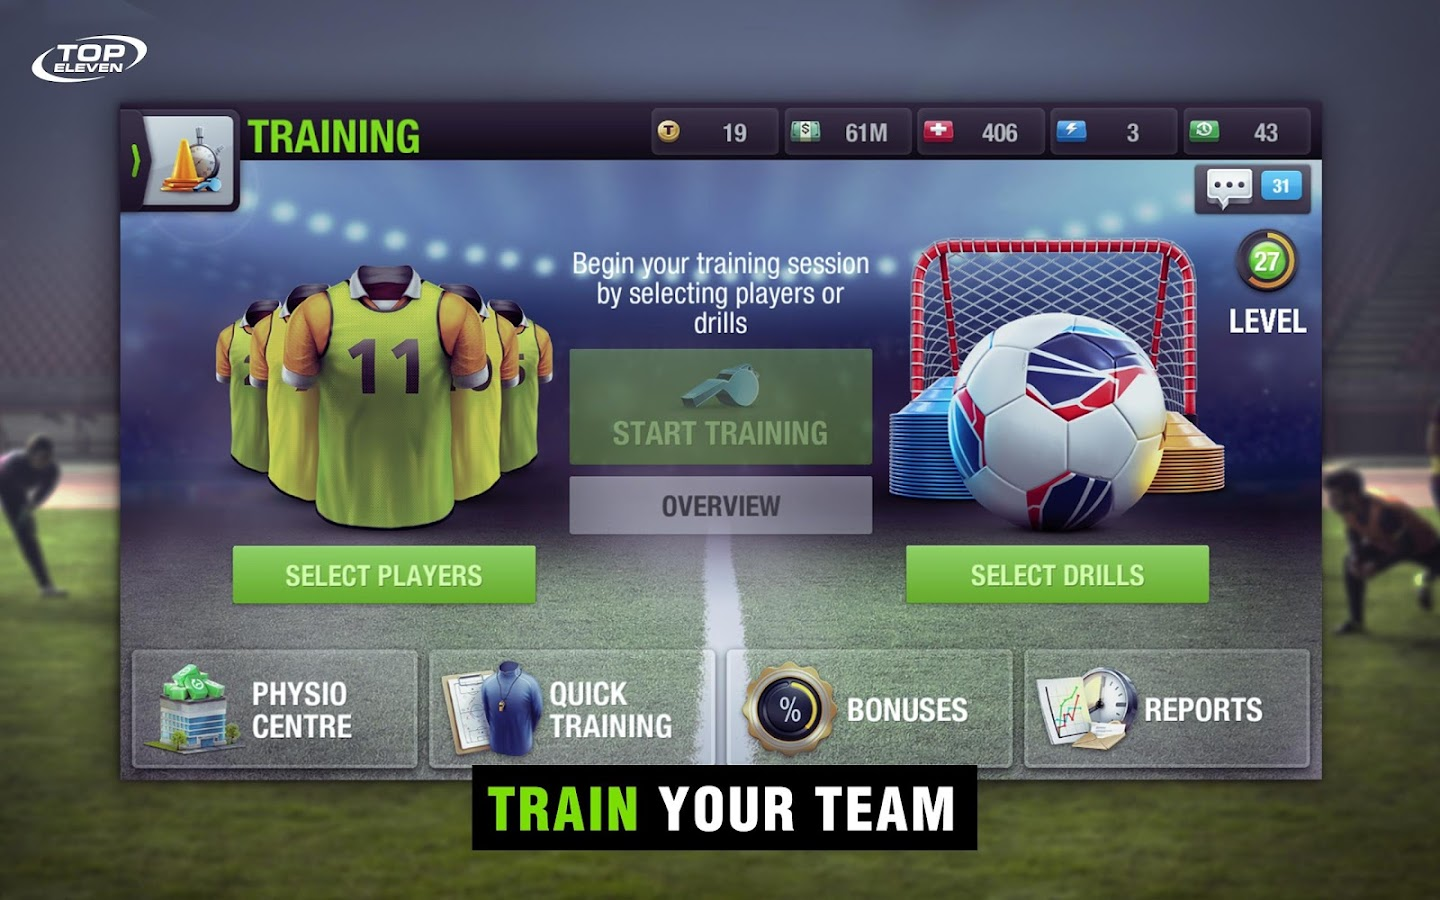 Top Eleven Be a Soccer Manager Screenshot 9